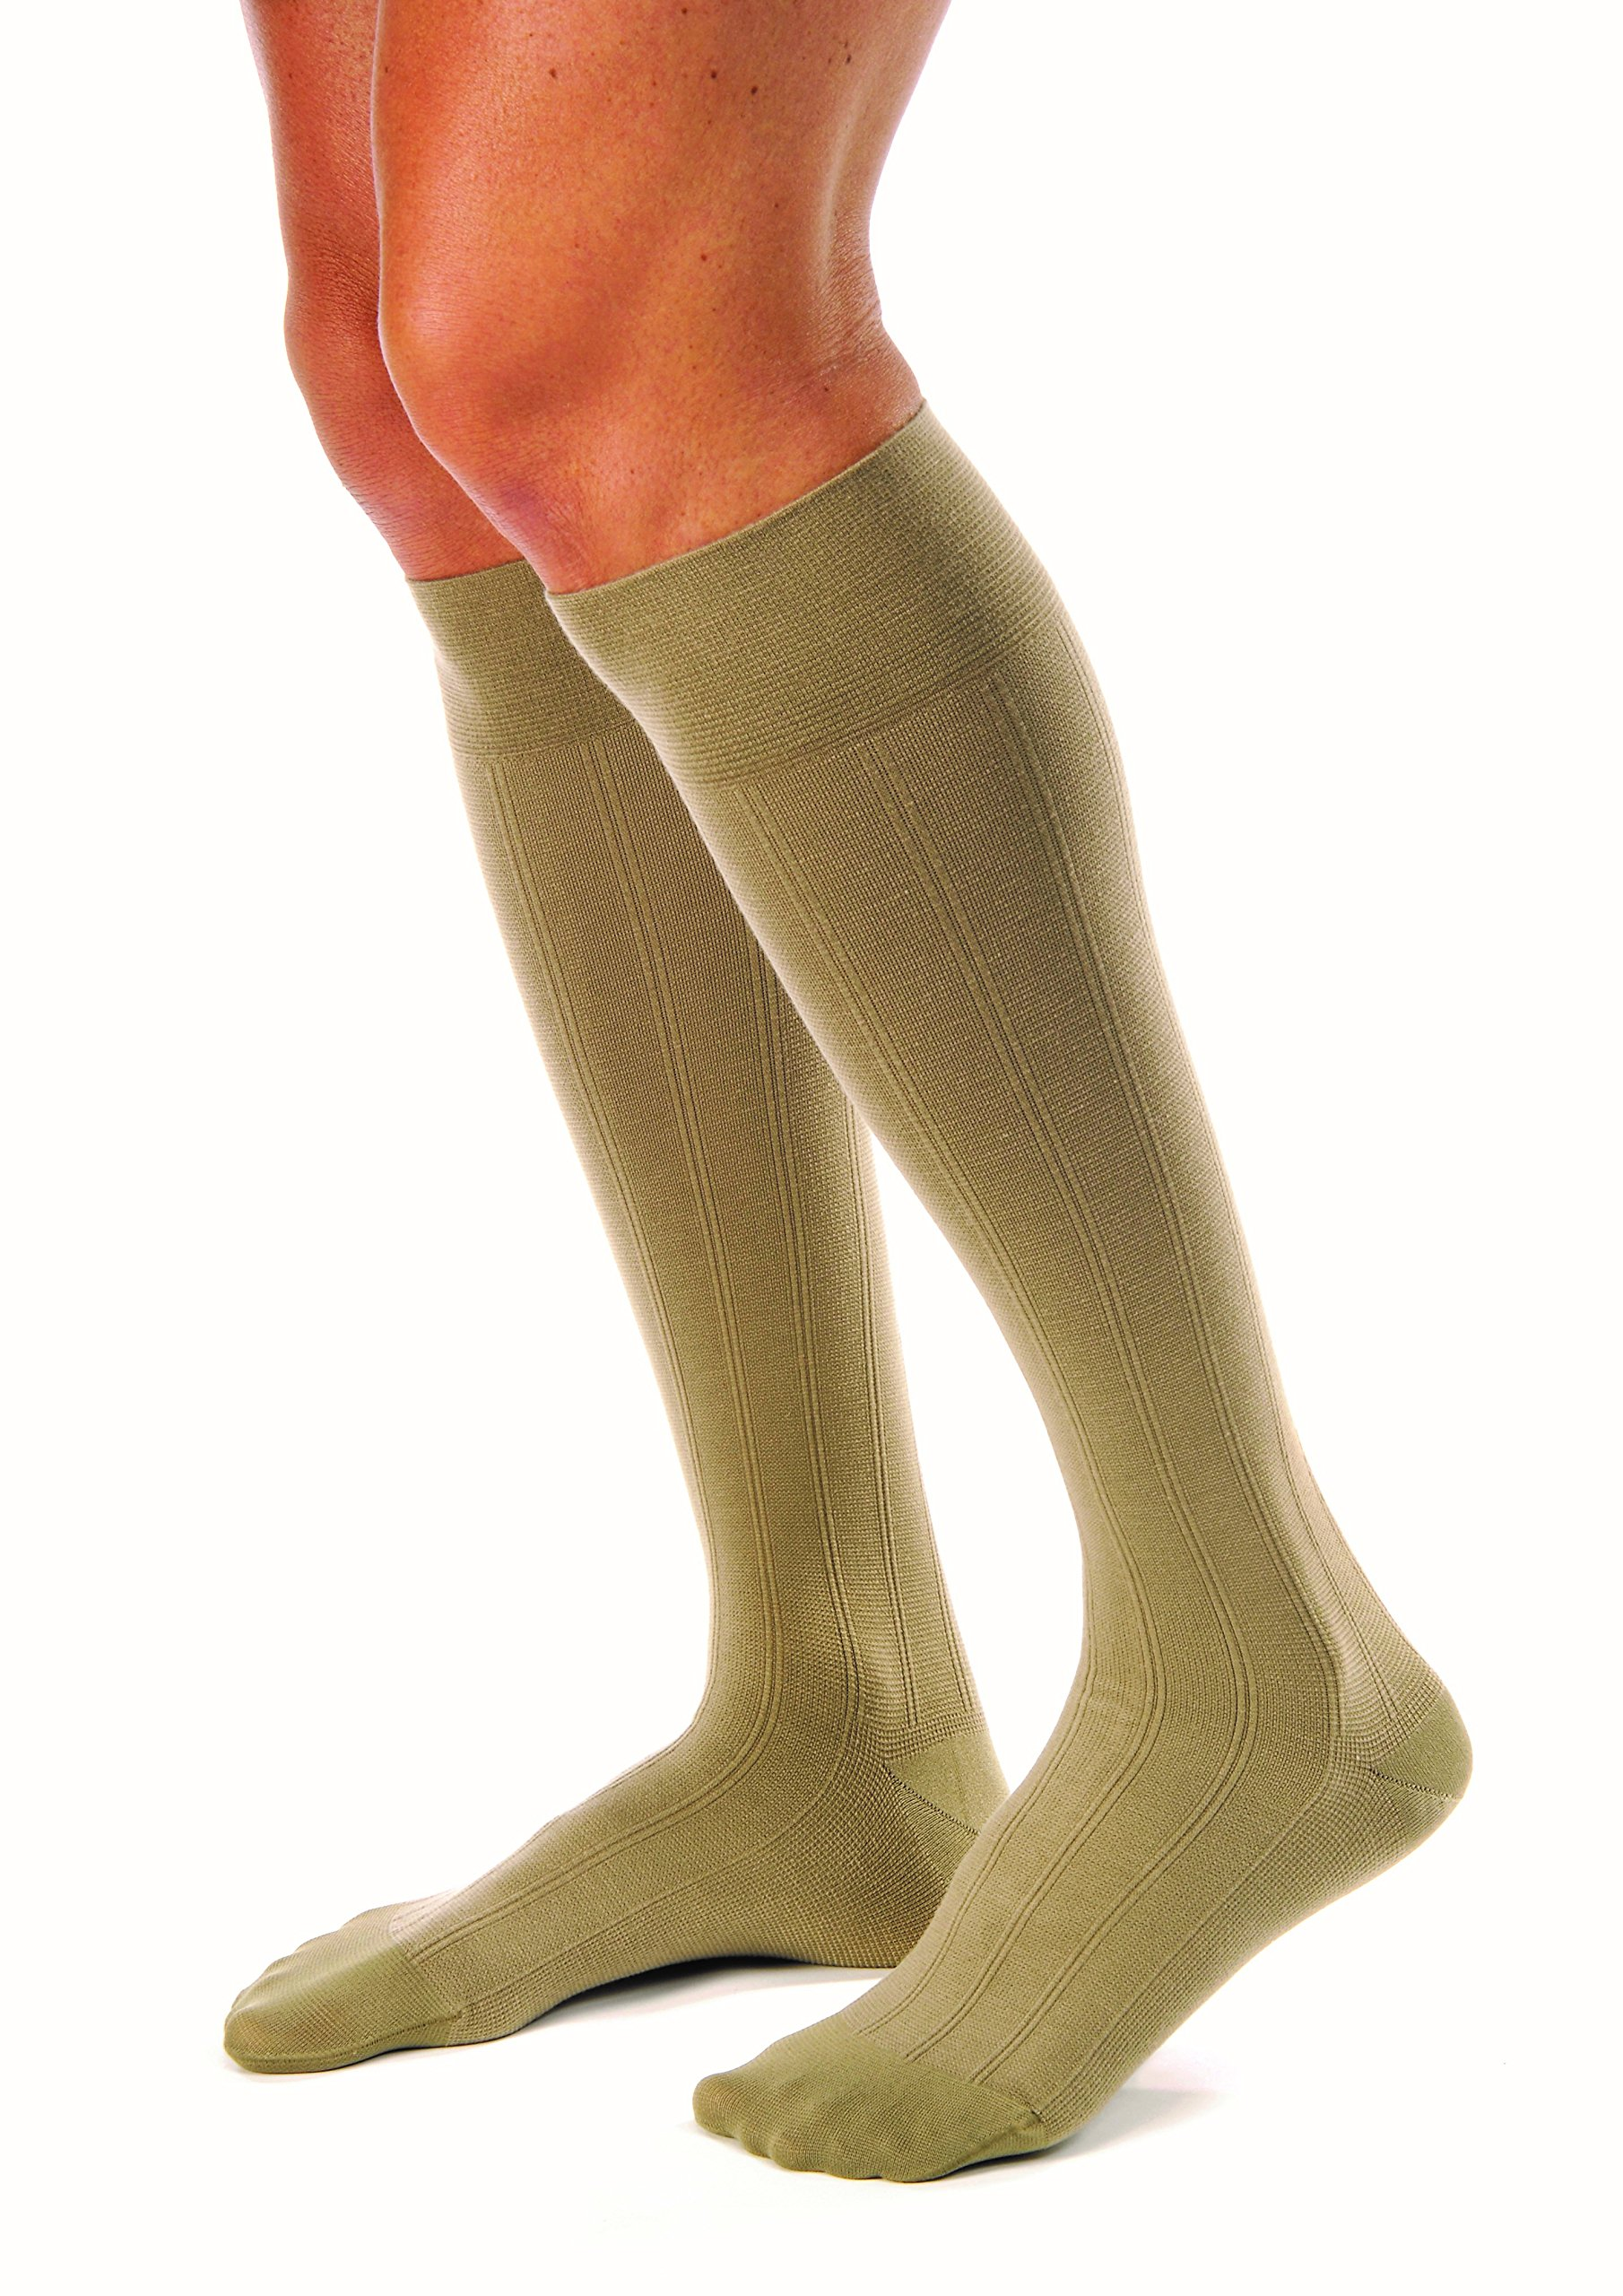 JOBST for Men Casual Knee High 30-40 mmHg Compression Socks, Closed Toe, X-Large, Khaki